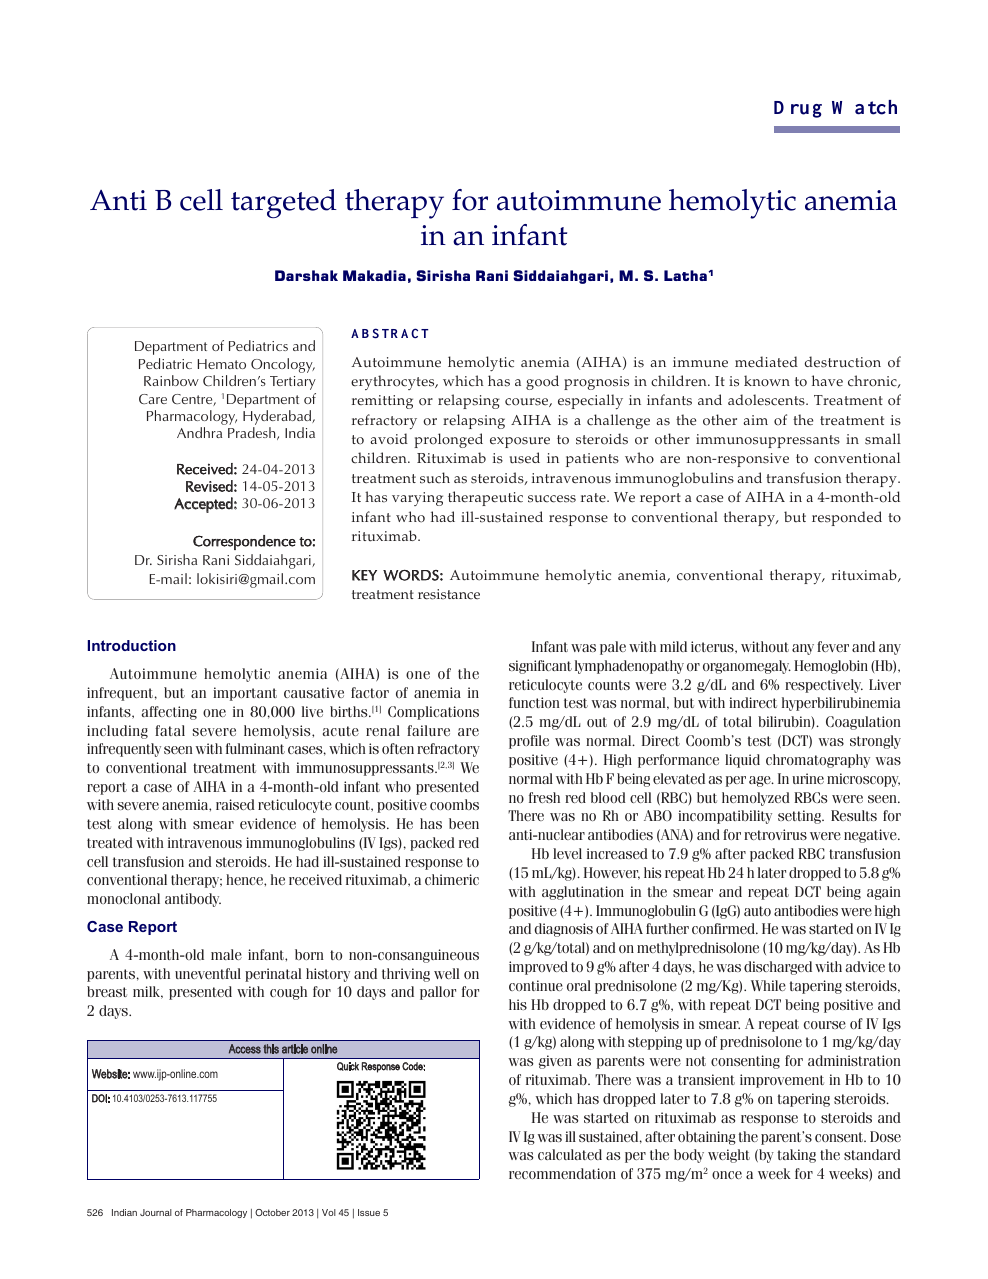 Anti B cell targeted therapy for autoimmune hemolytic anemia